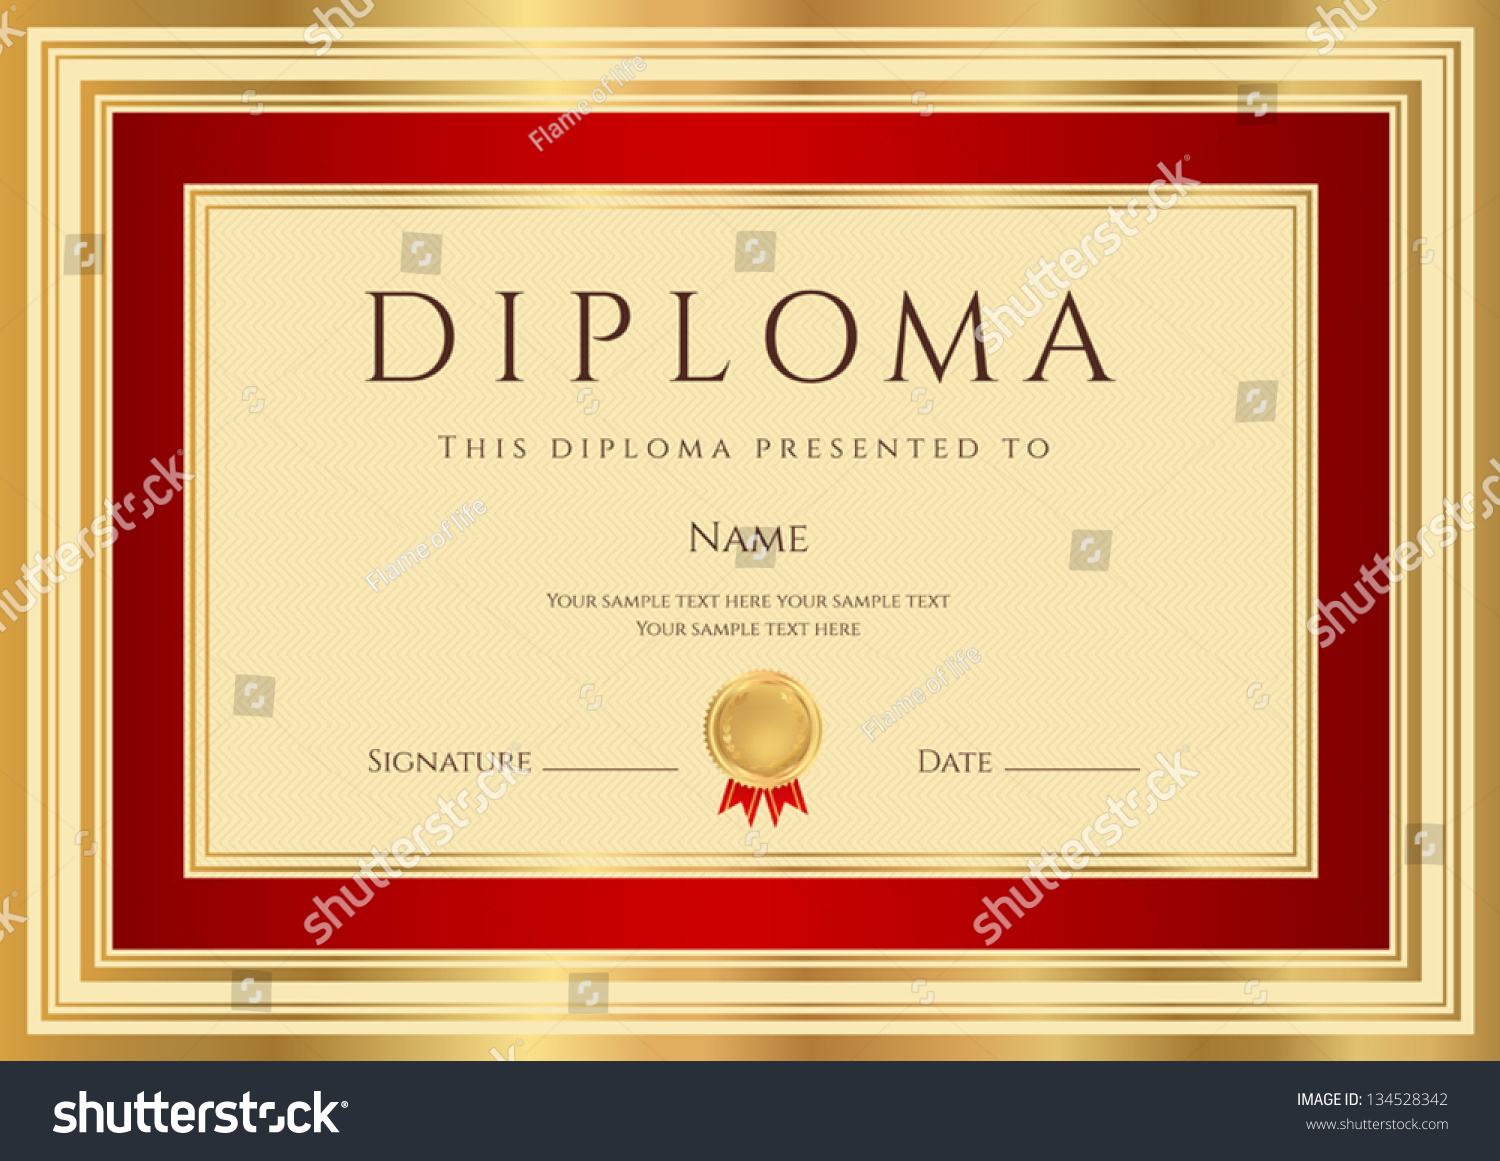 Royalty free diploma certificate template with 134528342 stock diploma certificate template with guilloche pattern red and gold border background design usable for yelopaper Choice Image